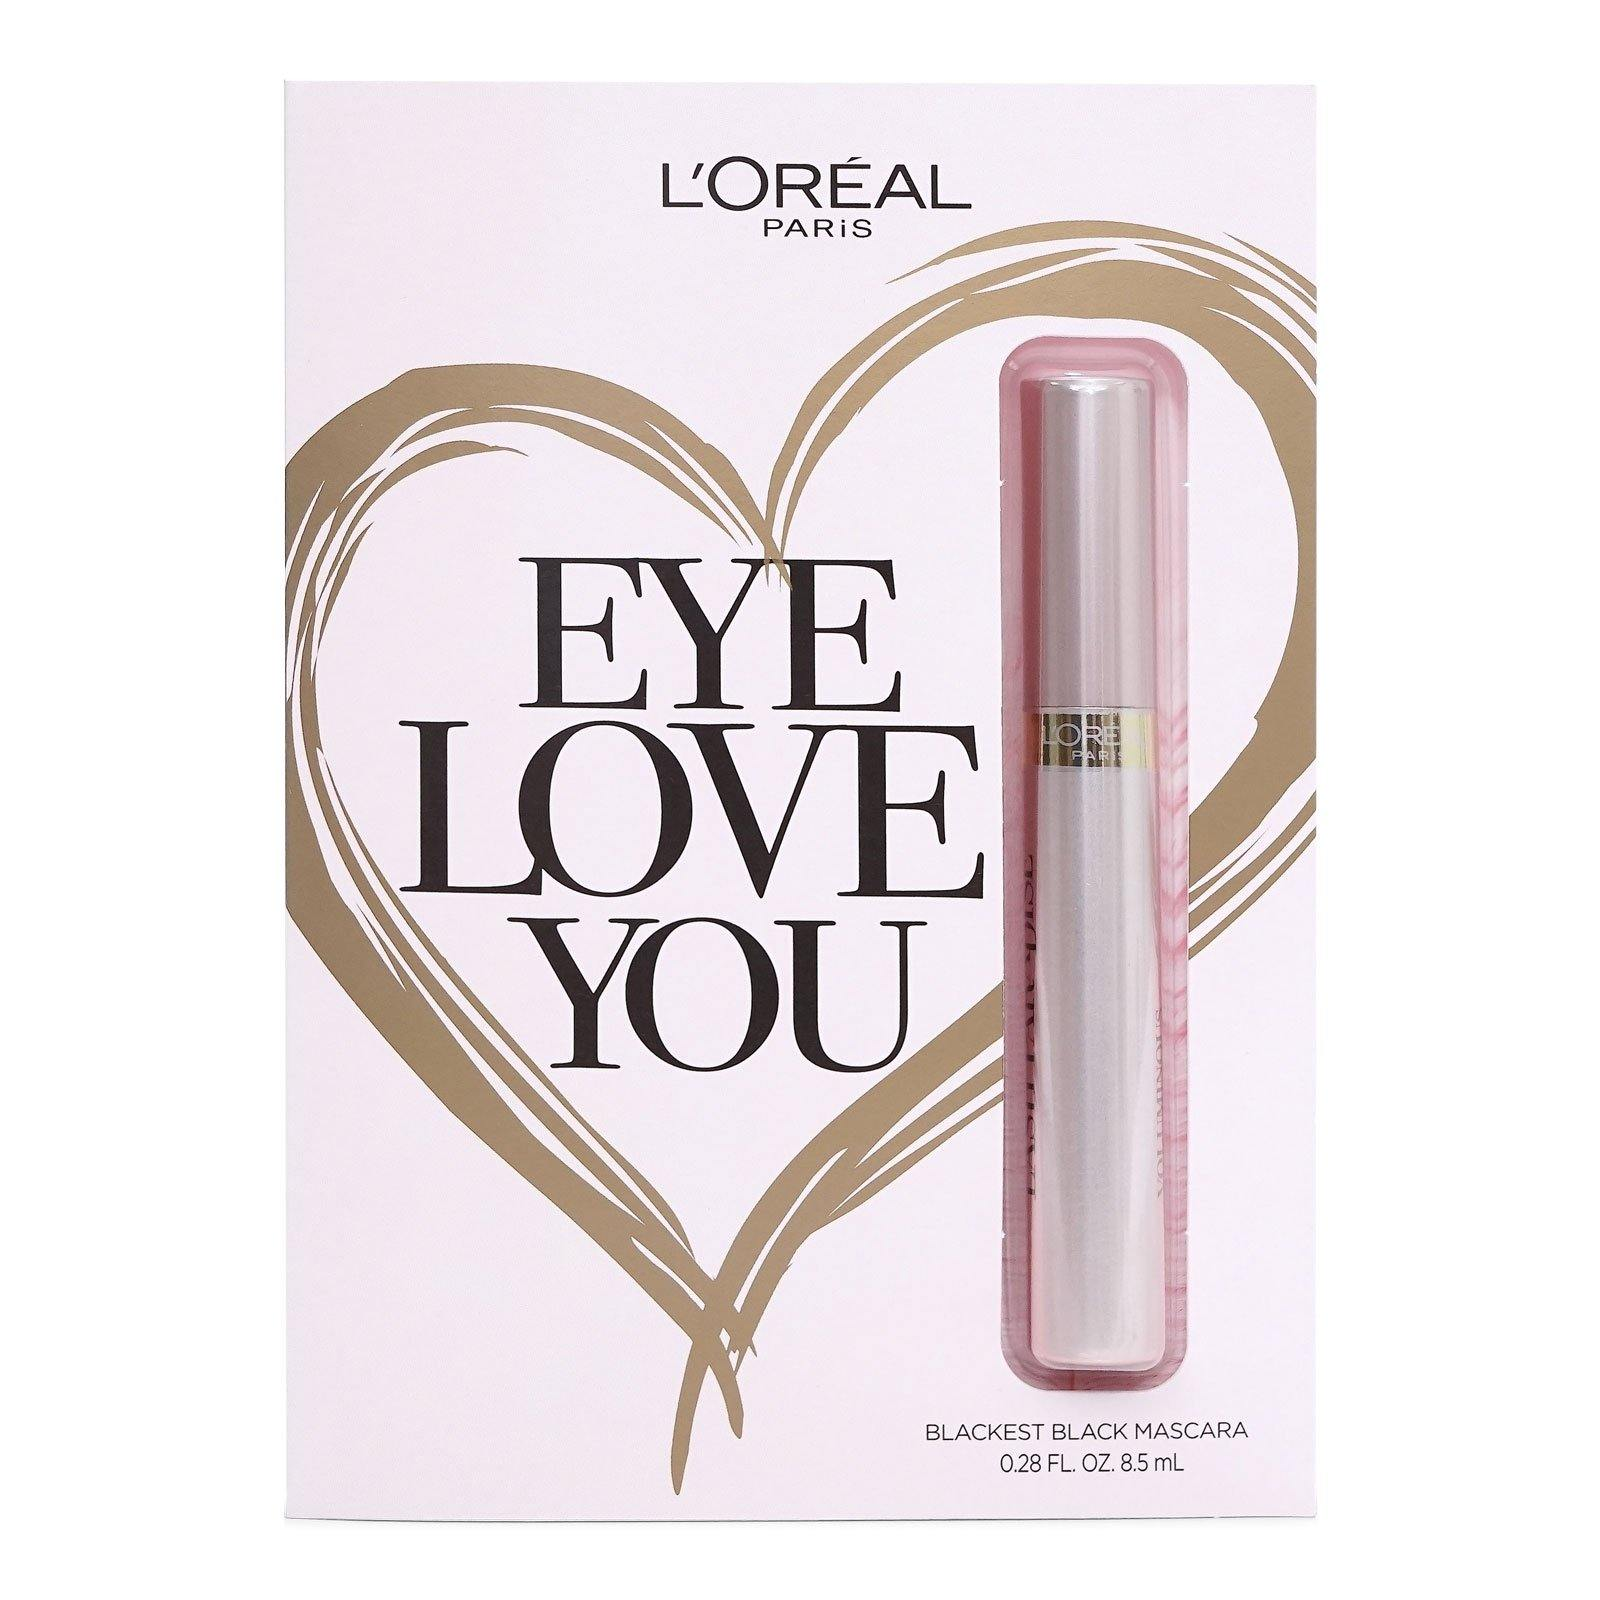 L'Oreal Lash Paradise Mascara, #300 Blackest Black - 0.28 fl oz (Eye Love You) (24/cs)